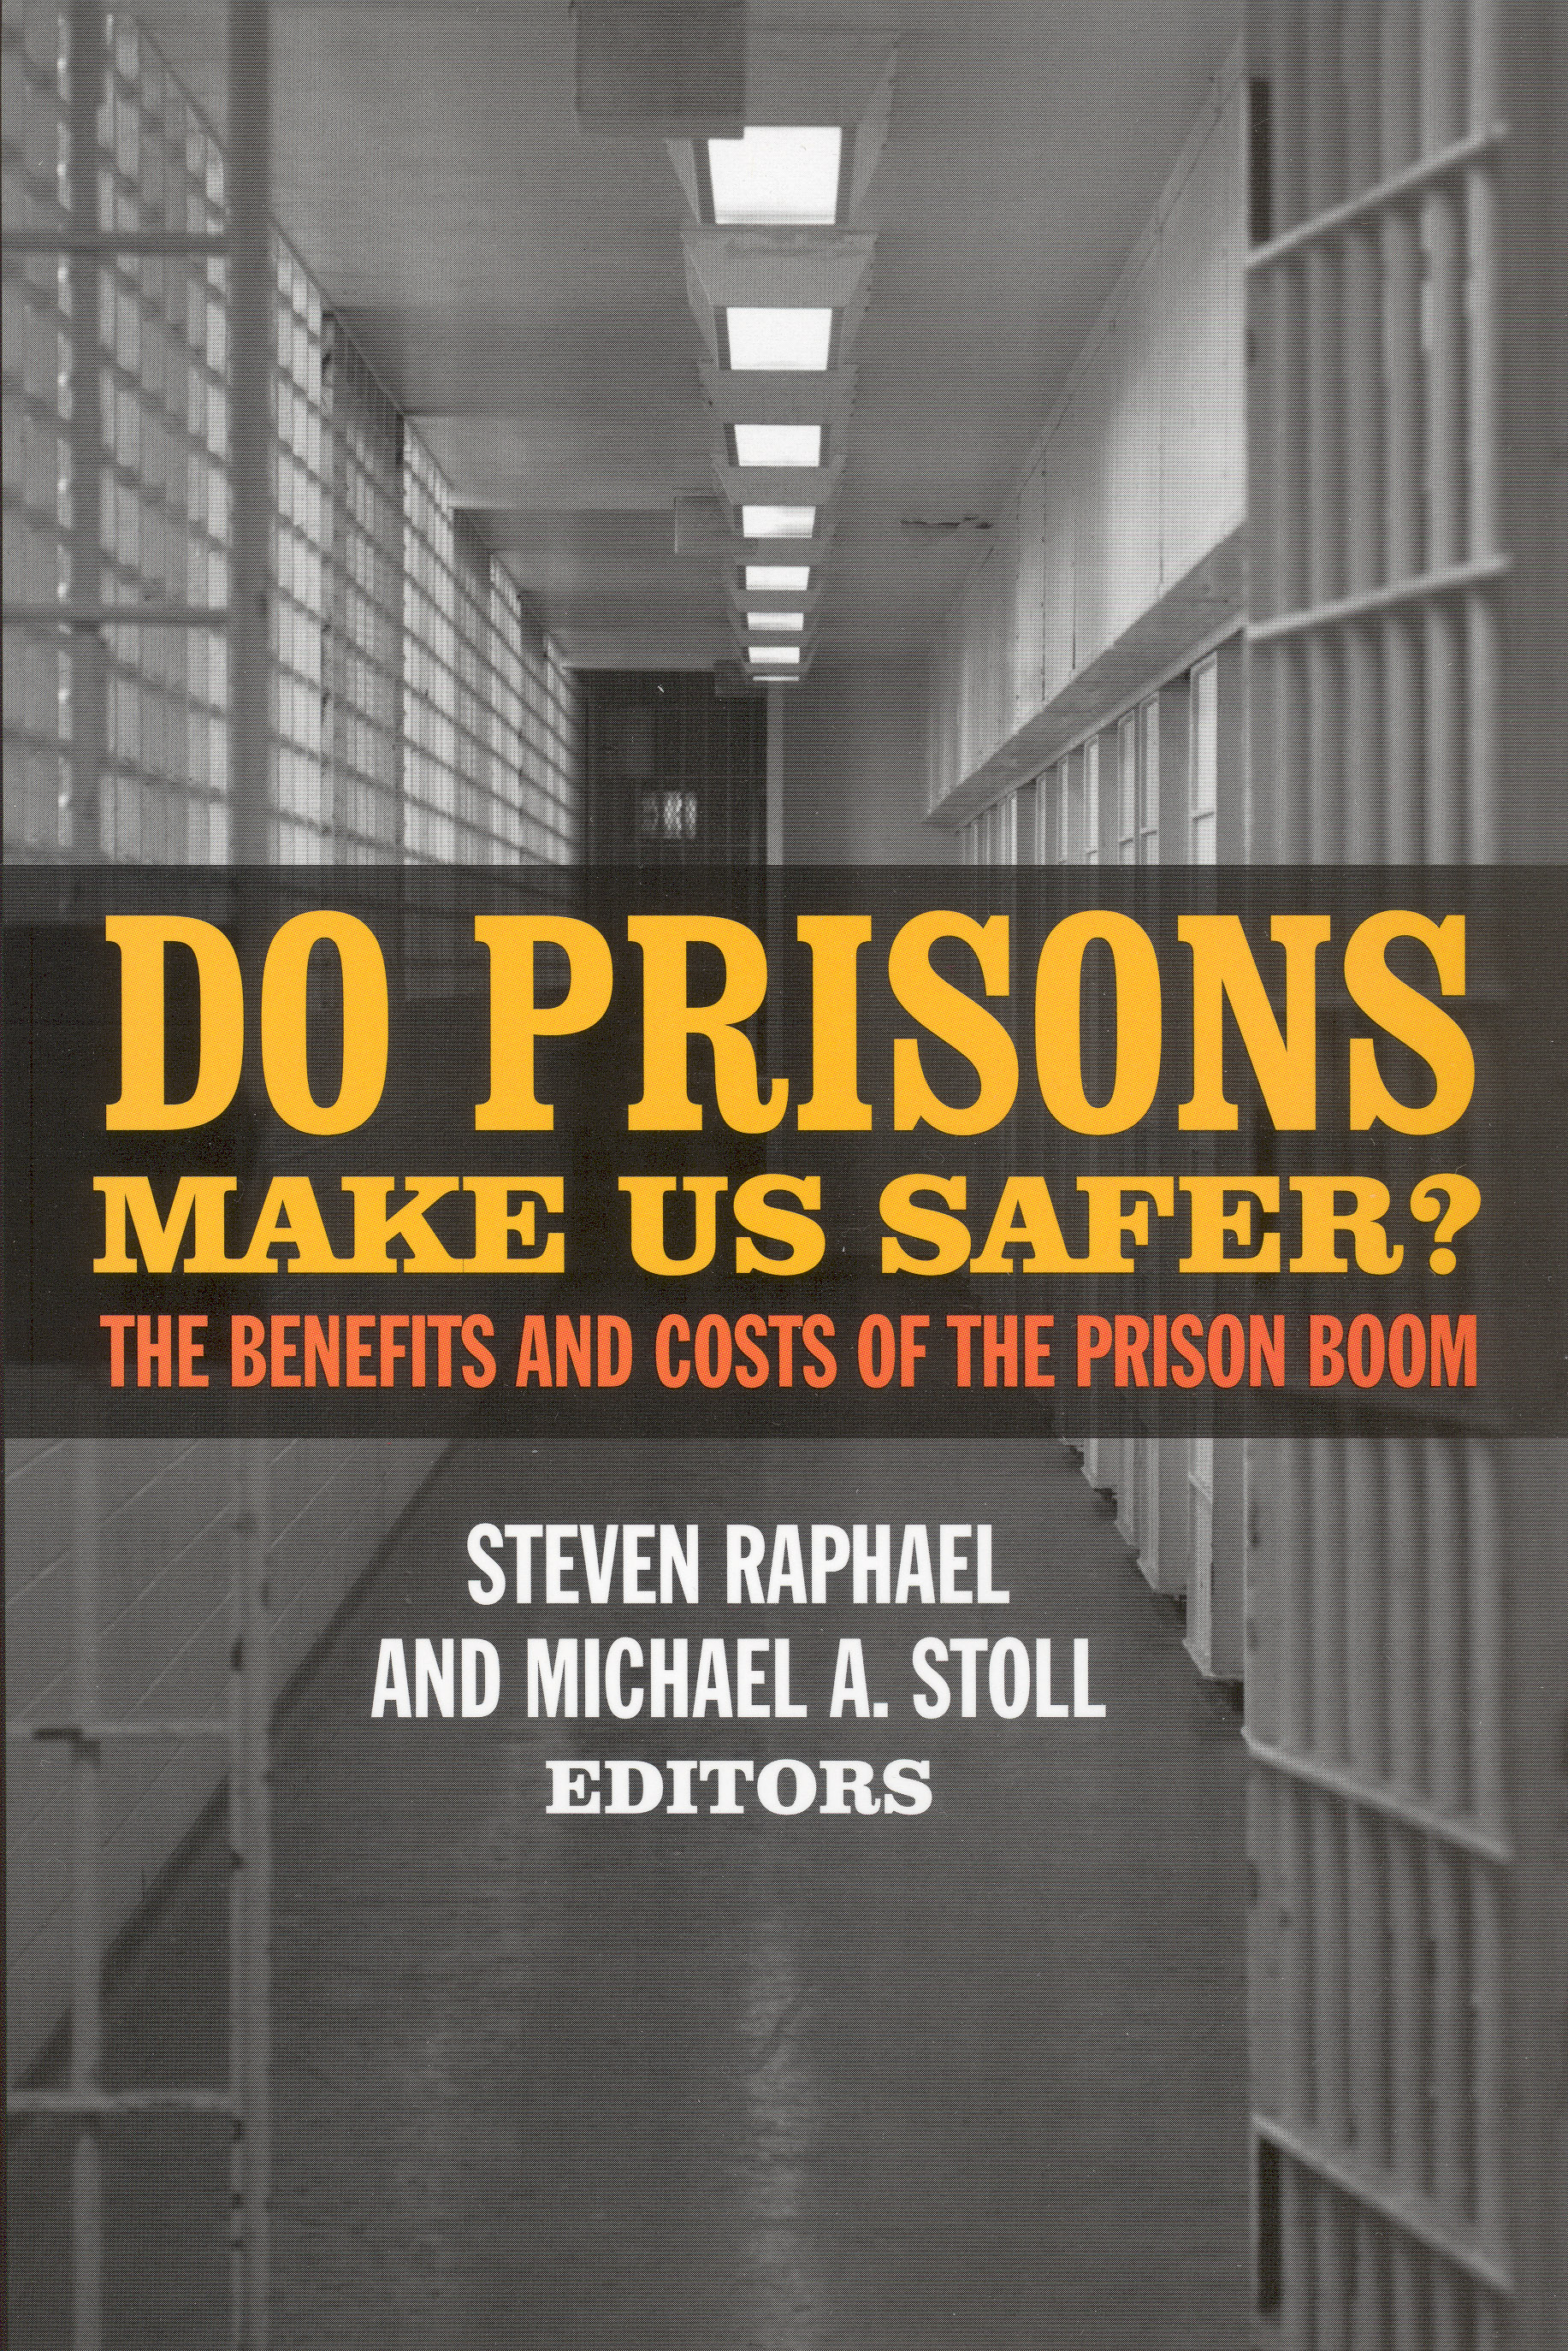 the prison boom in punishment and inequality in america a book by bruce western In punishment and inequality in america, bruce western  of punishment in which trends  of western's book underline the prison boom's.